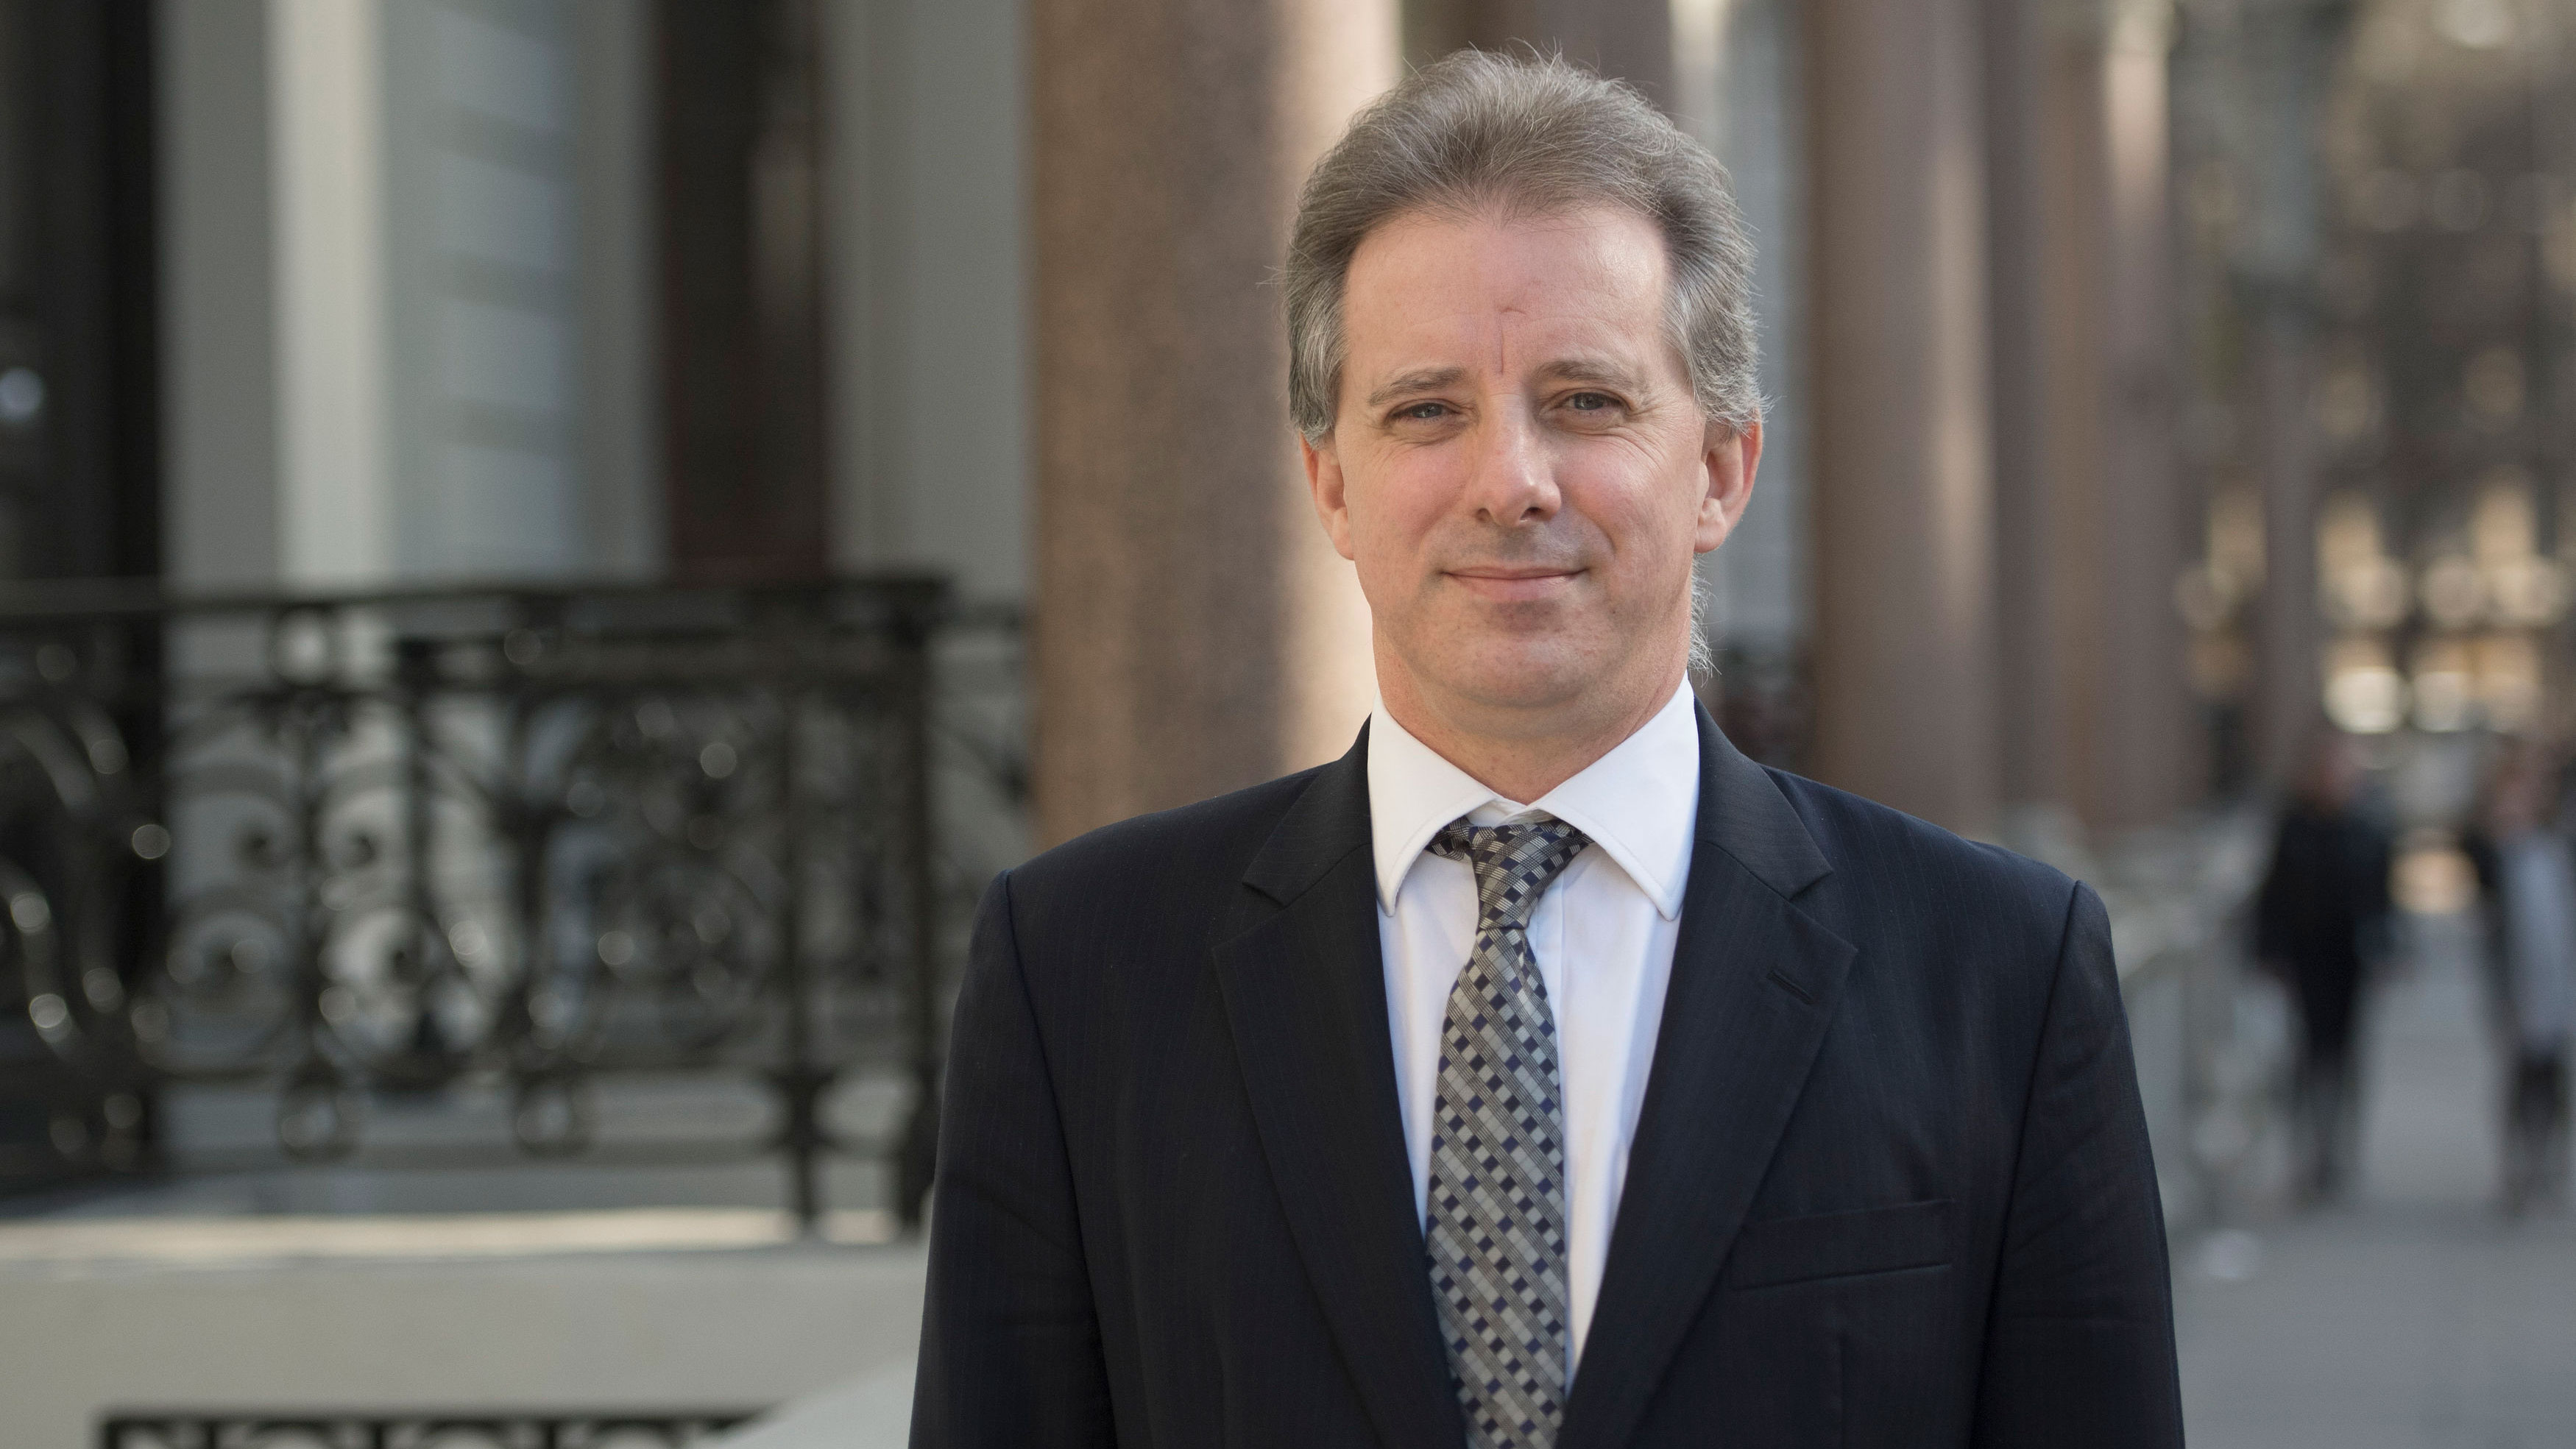 Christopher Steele told additional information about him will be made public with DOJ IG report